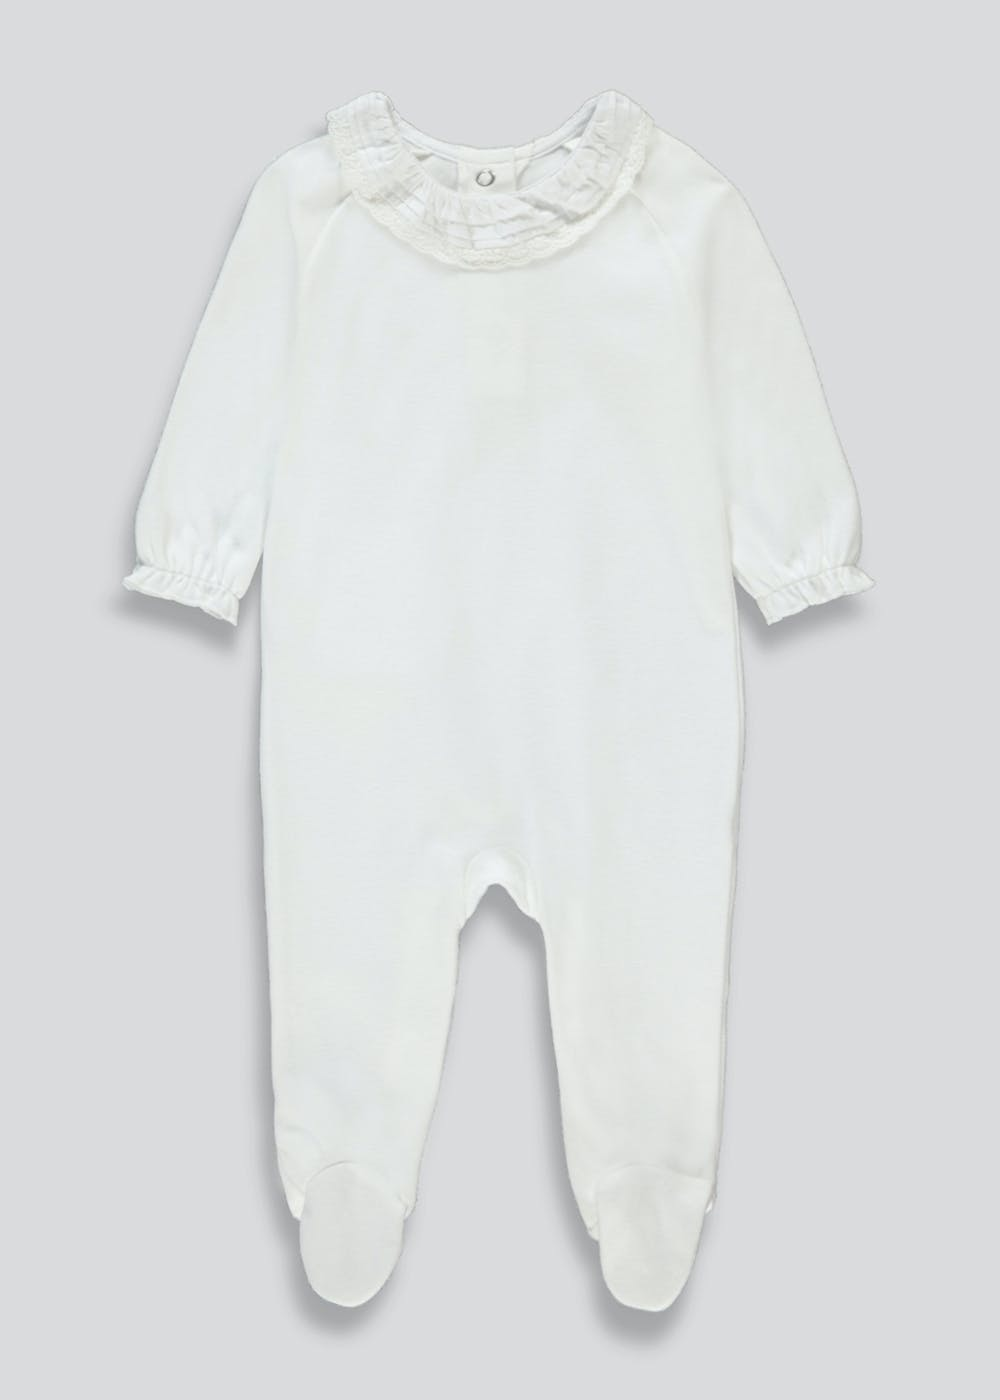 Unisex Frill Detail Baby Grow (Tiny Baby-9mths) – White